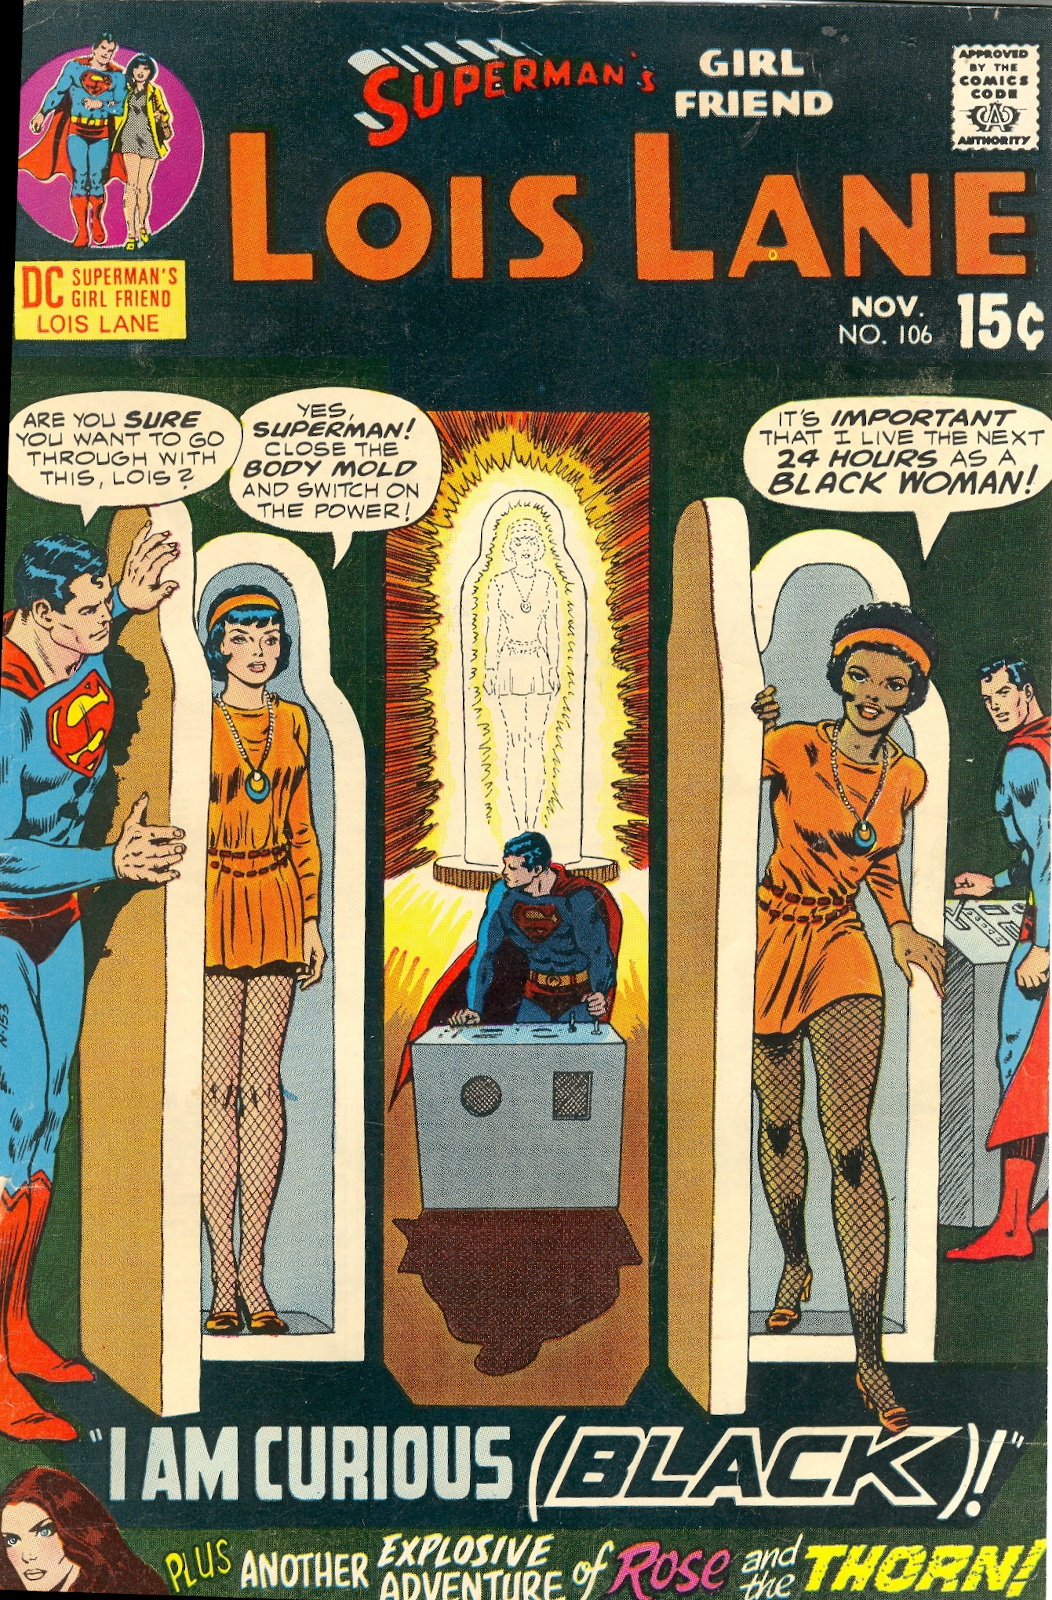 Image result for Lois Lane into a black woman though.